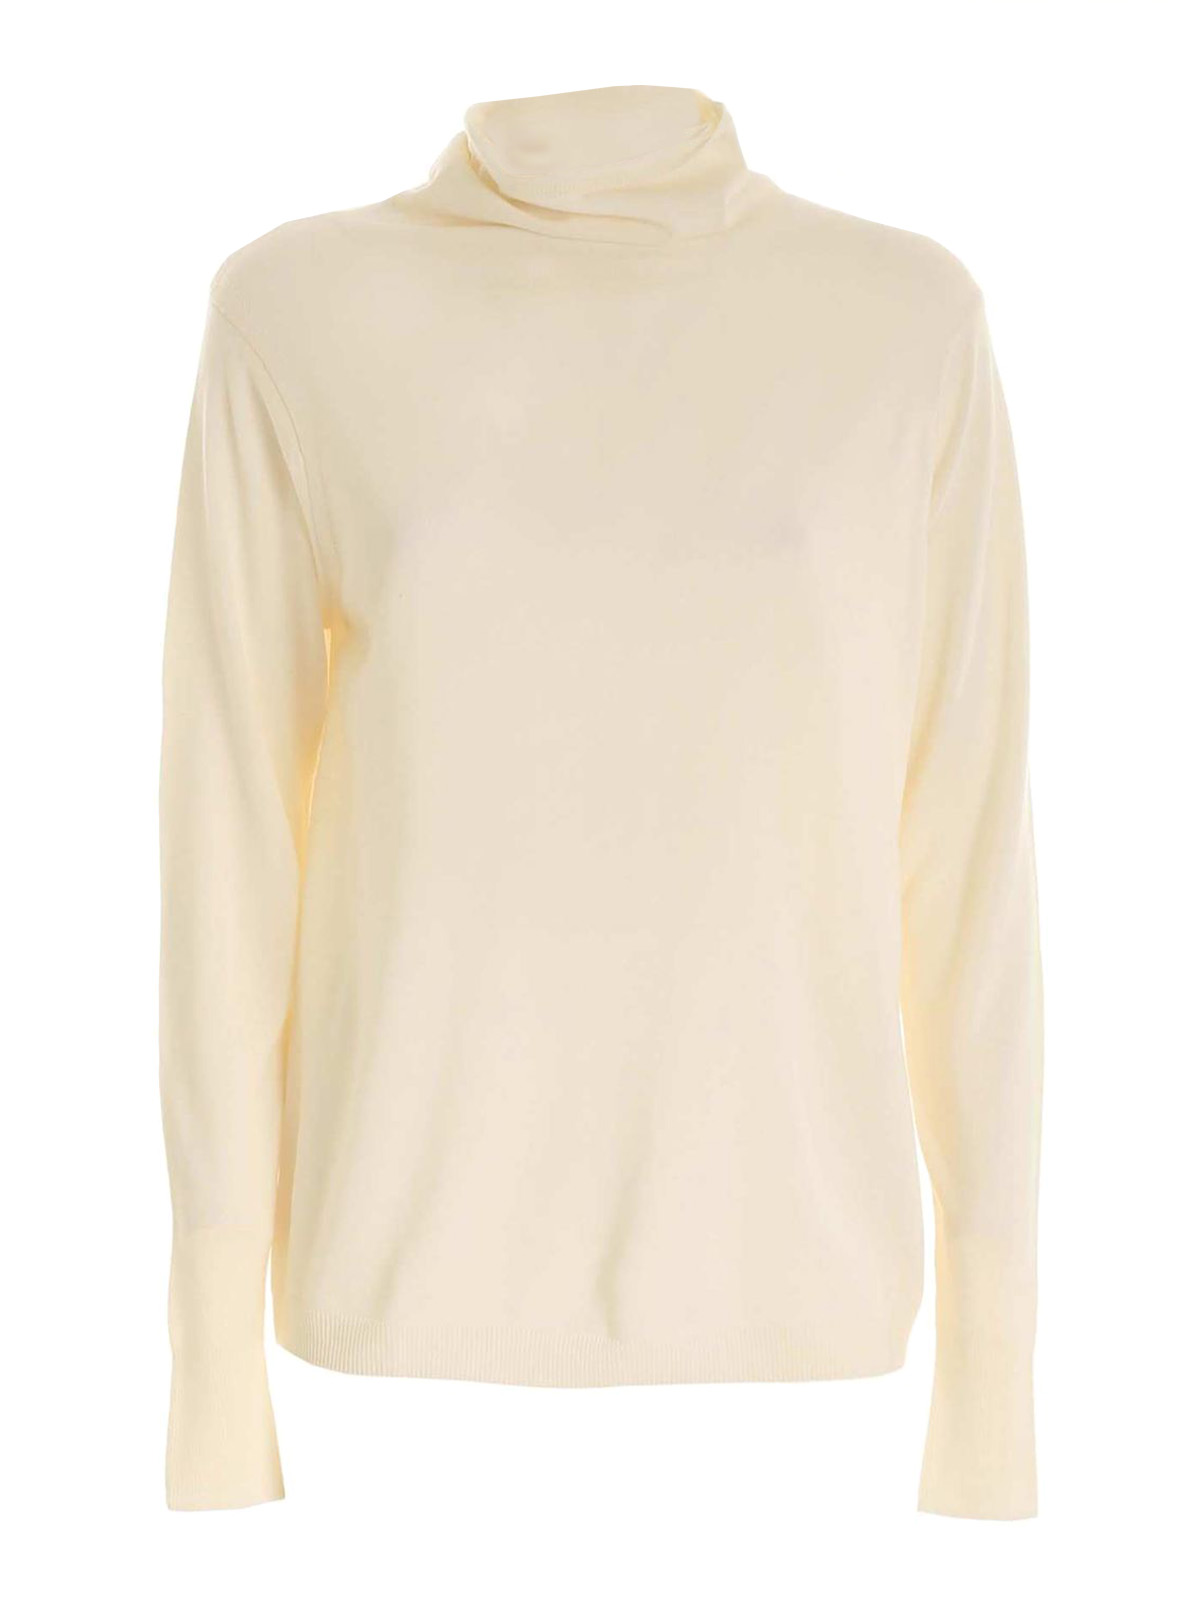 Aspesi WOOL TURTLENECK IN CREAM COLOR